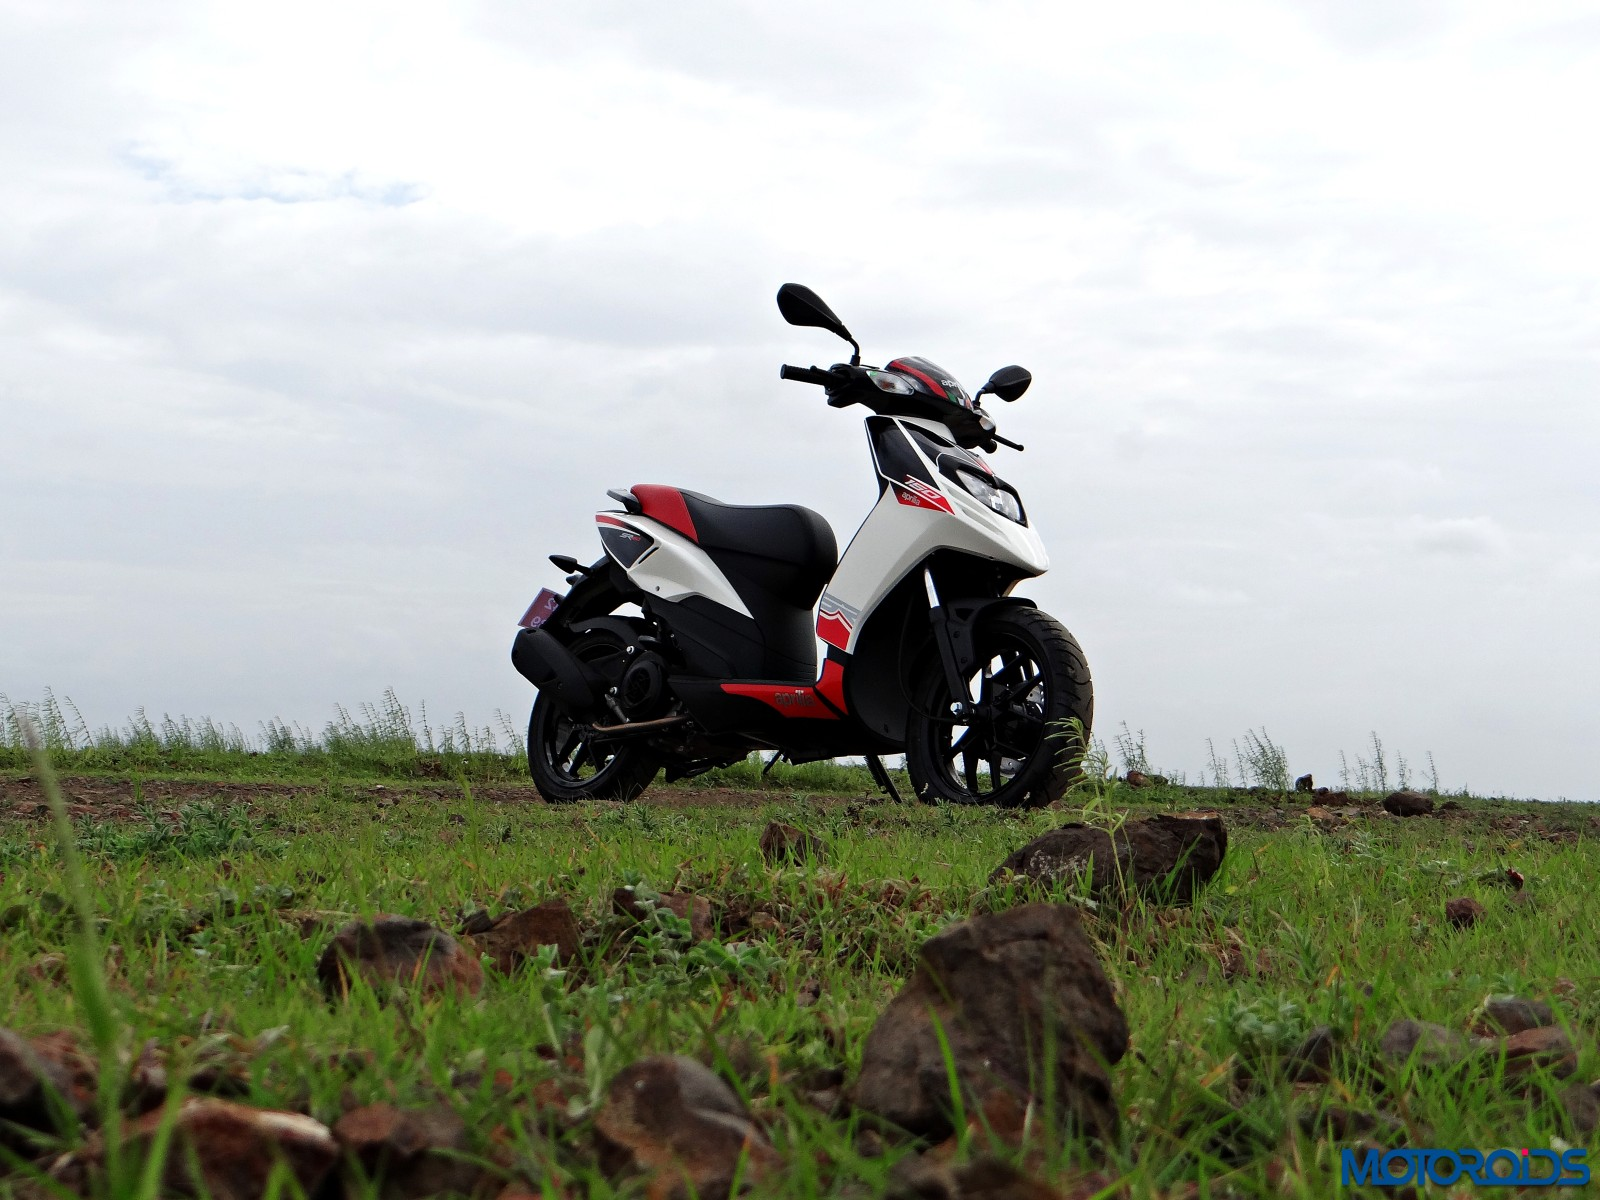 Aprilia SR 150 Review - Still Shots (13)